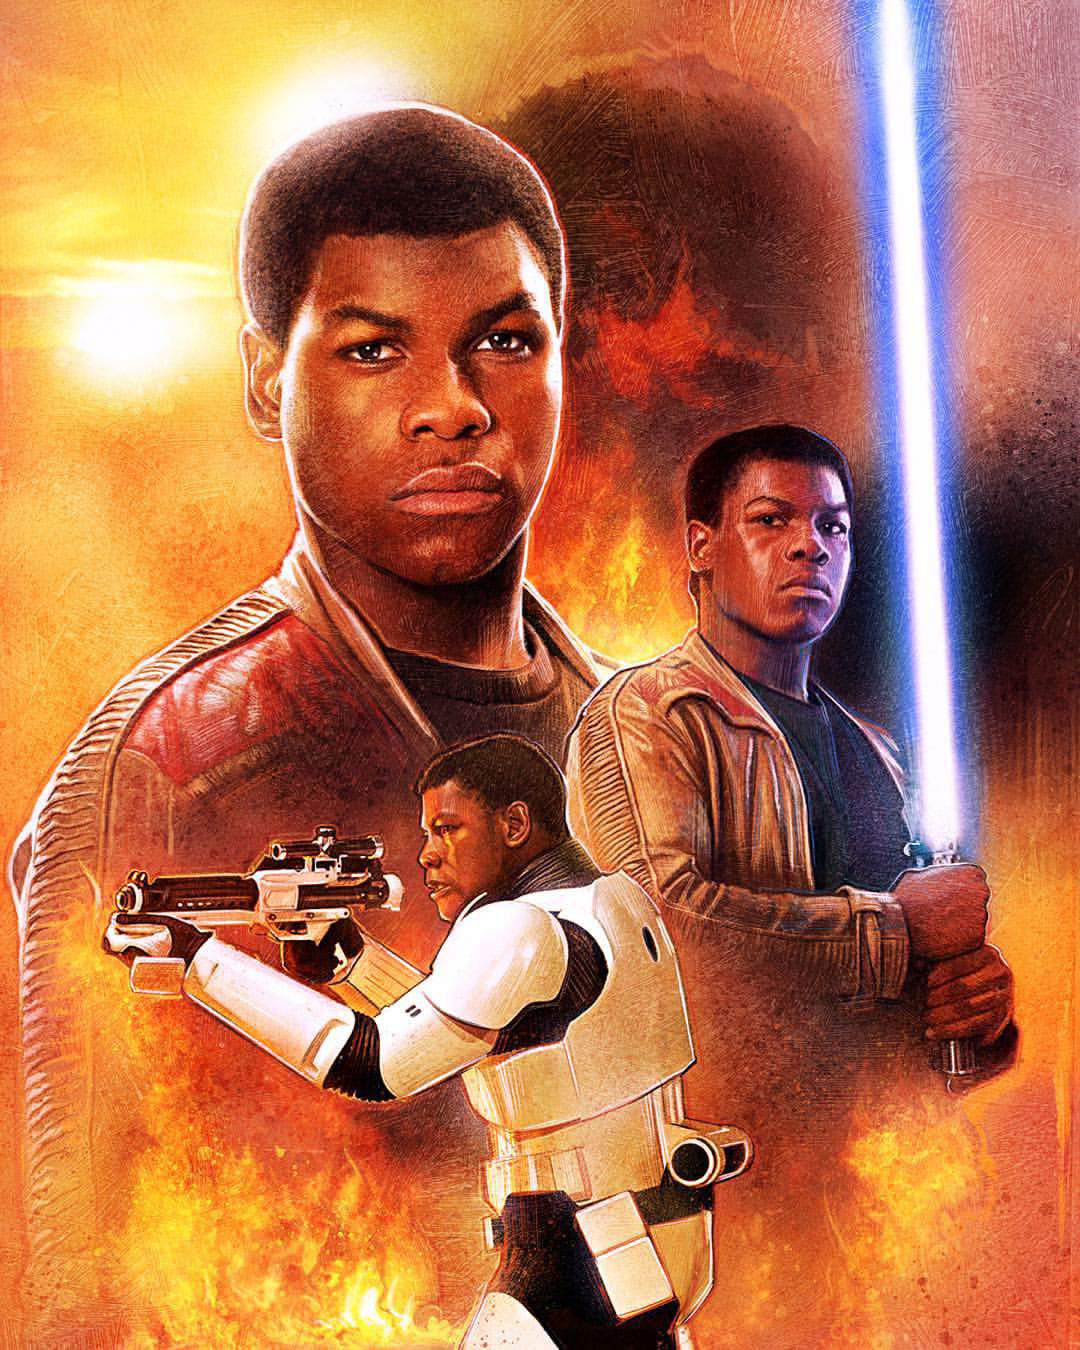 Finn (As of The Last Jedi)